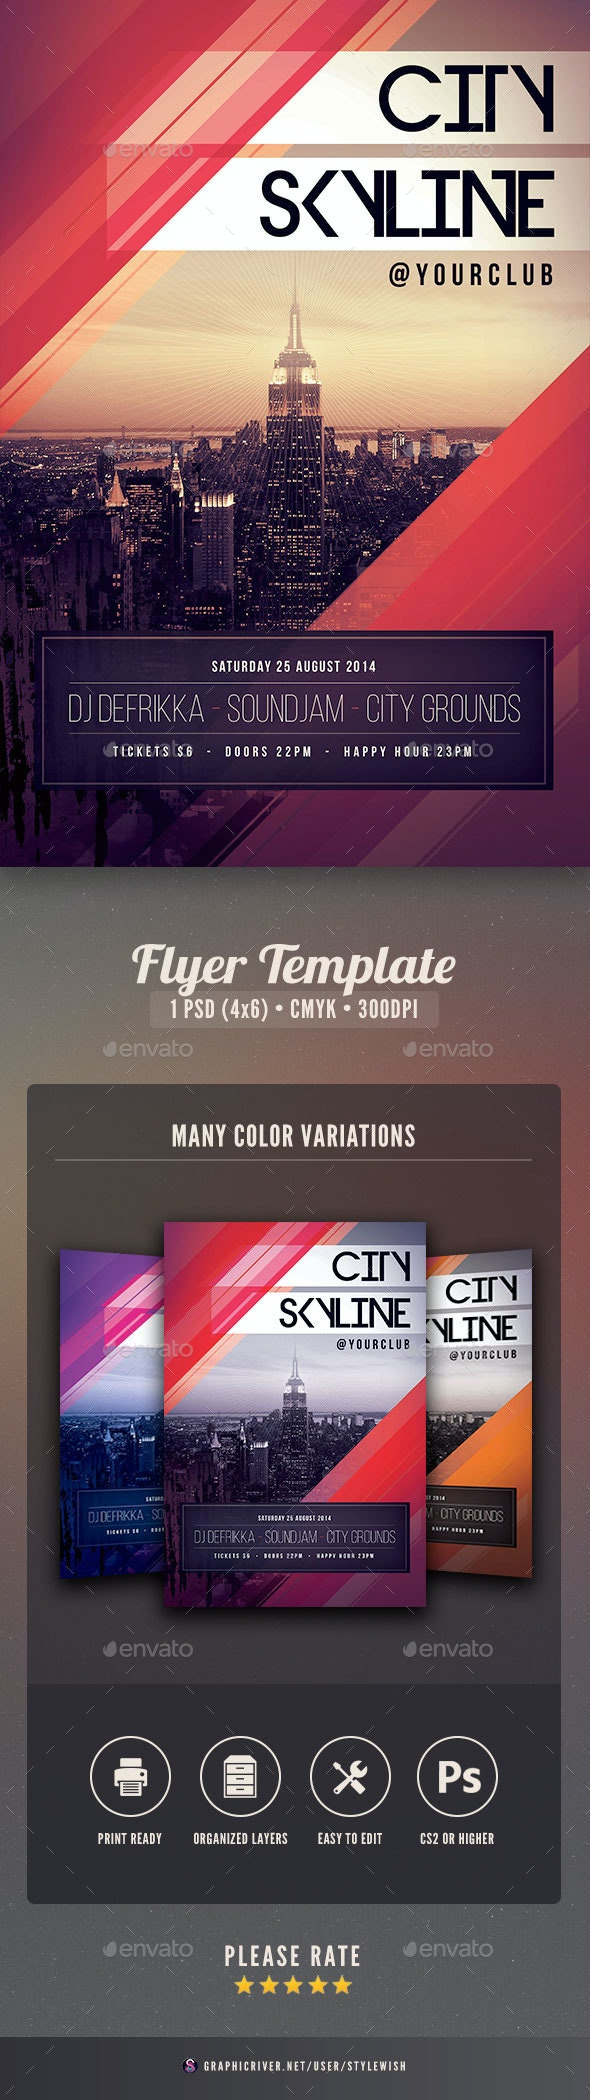 City Skyline Flyer - Clubs & Parties Events